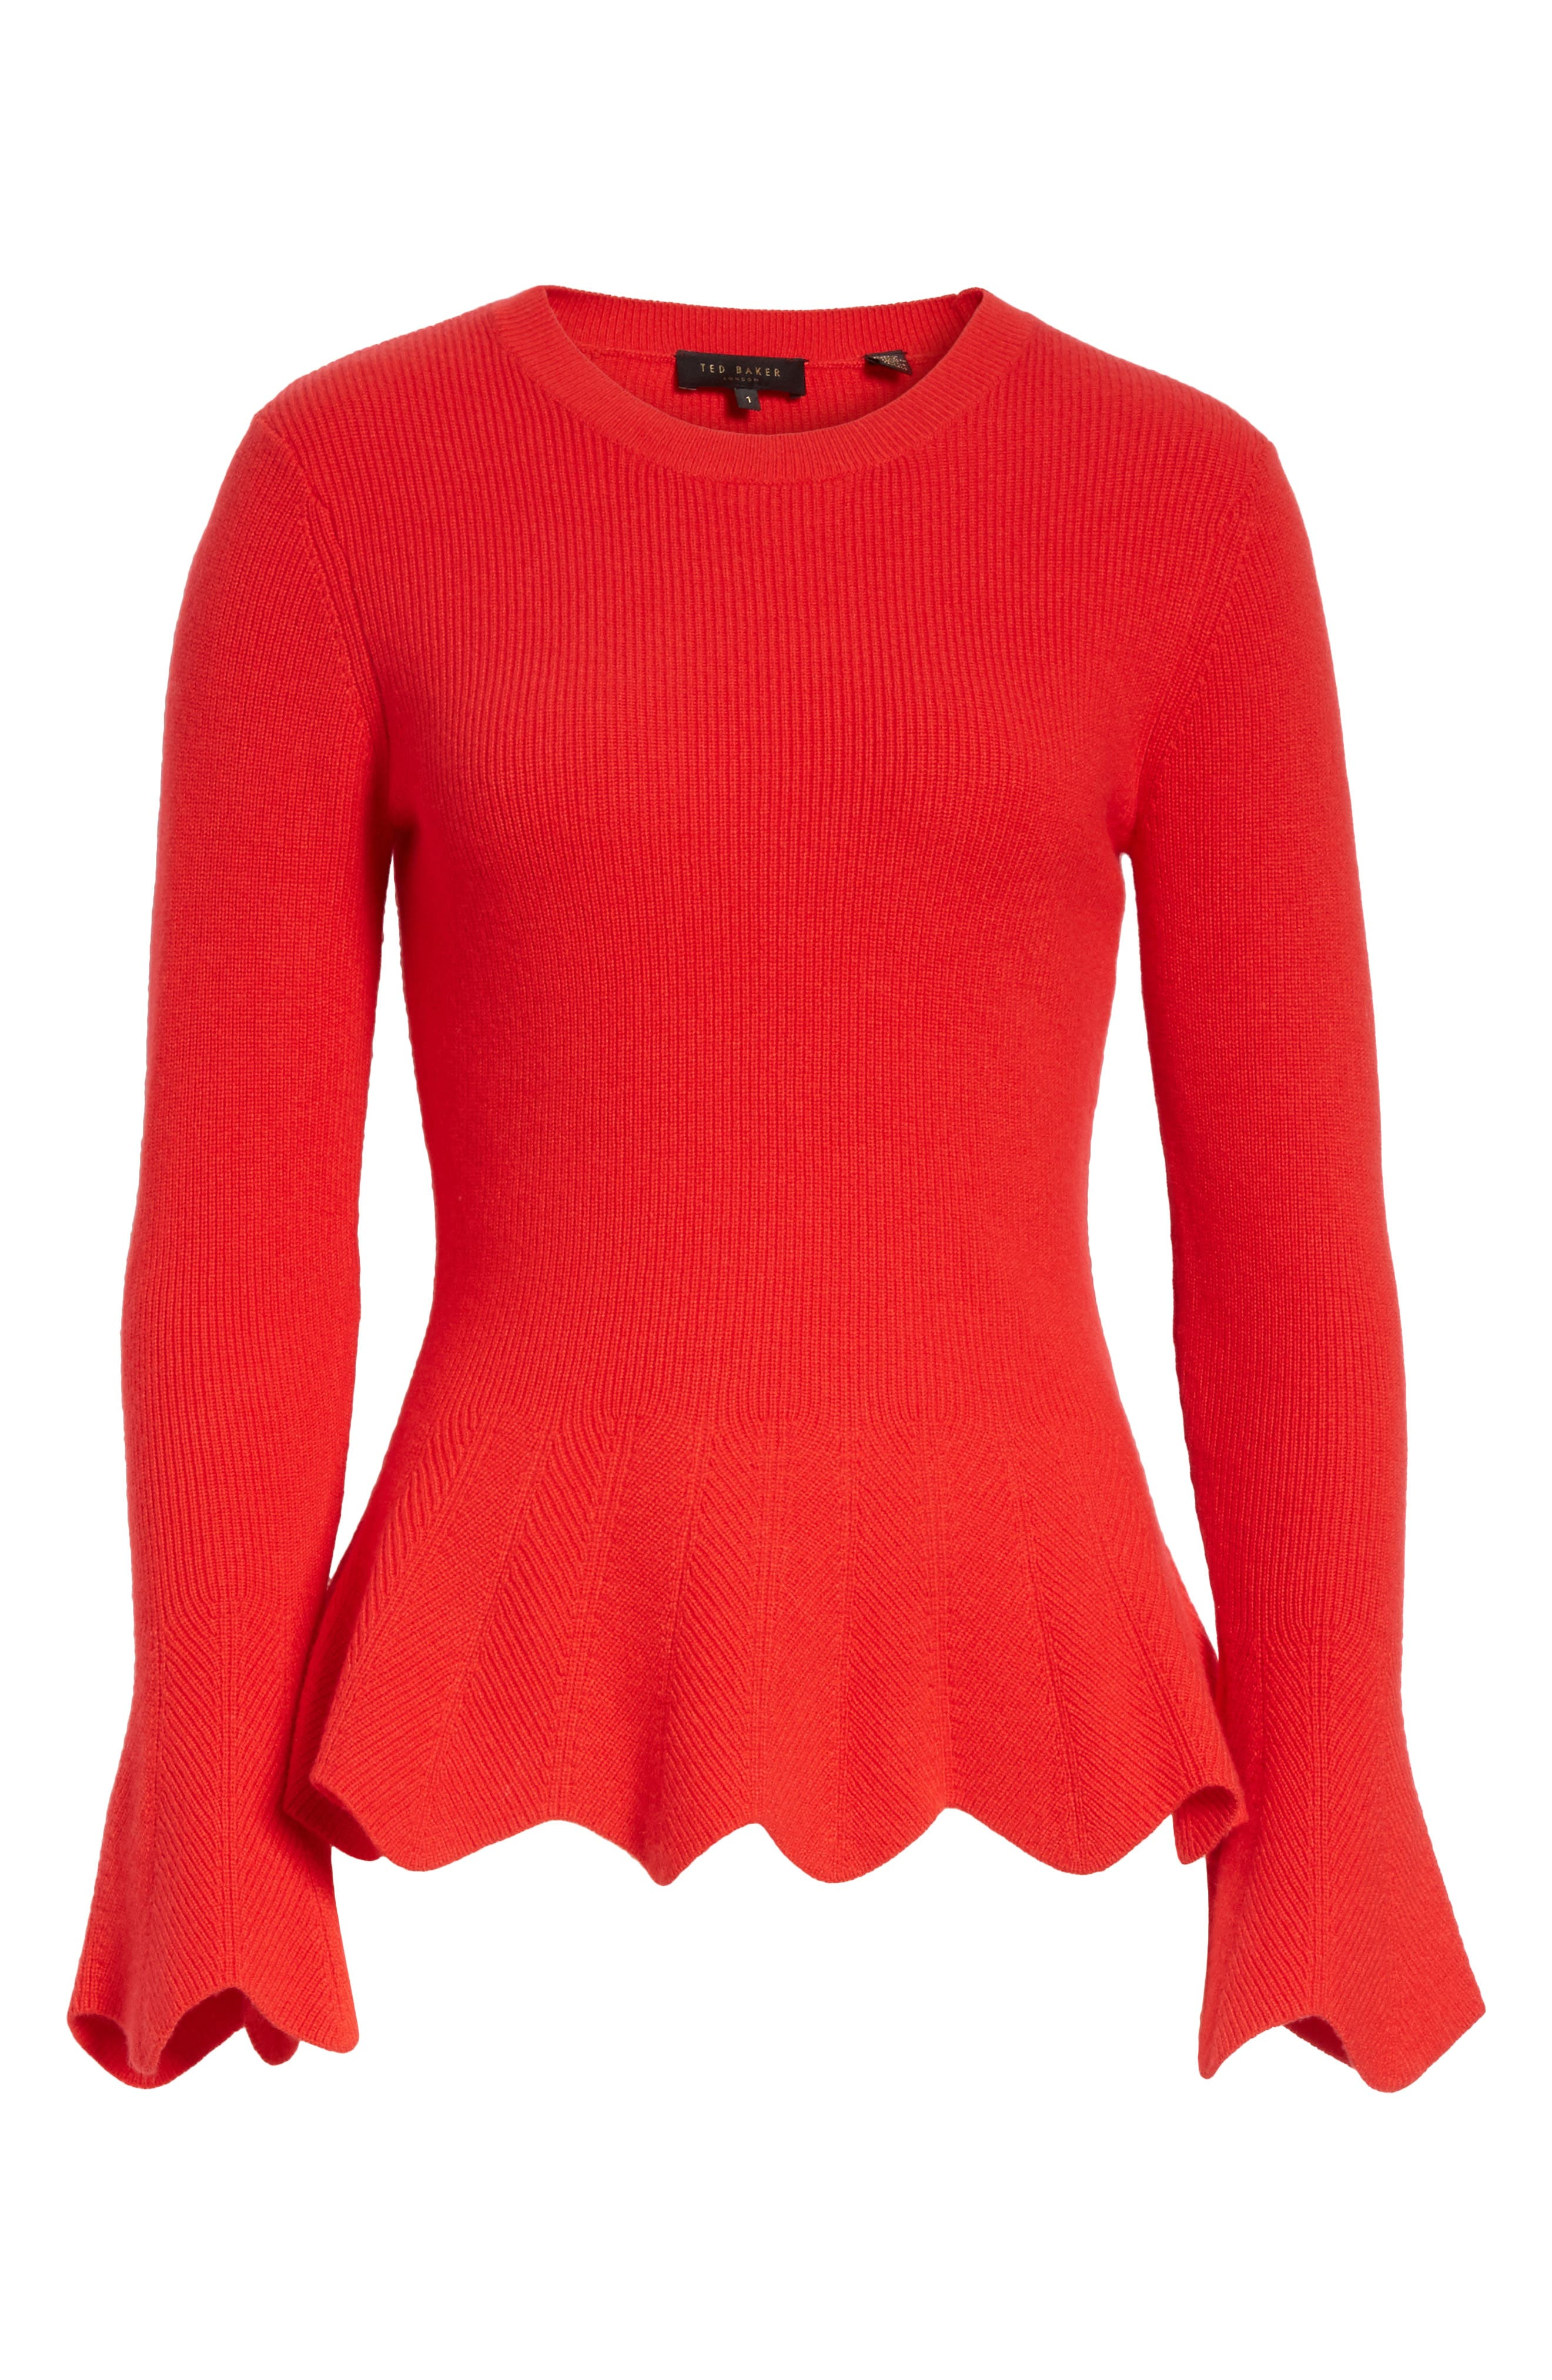 Peplum Sweater,                             Alternate thumbnail 6, color,                             Bright Red